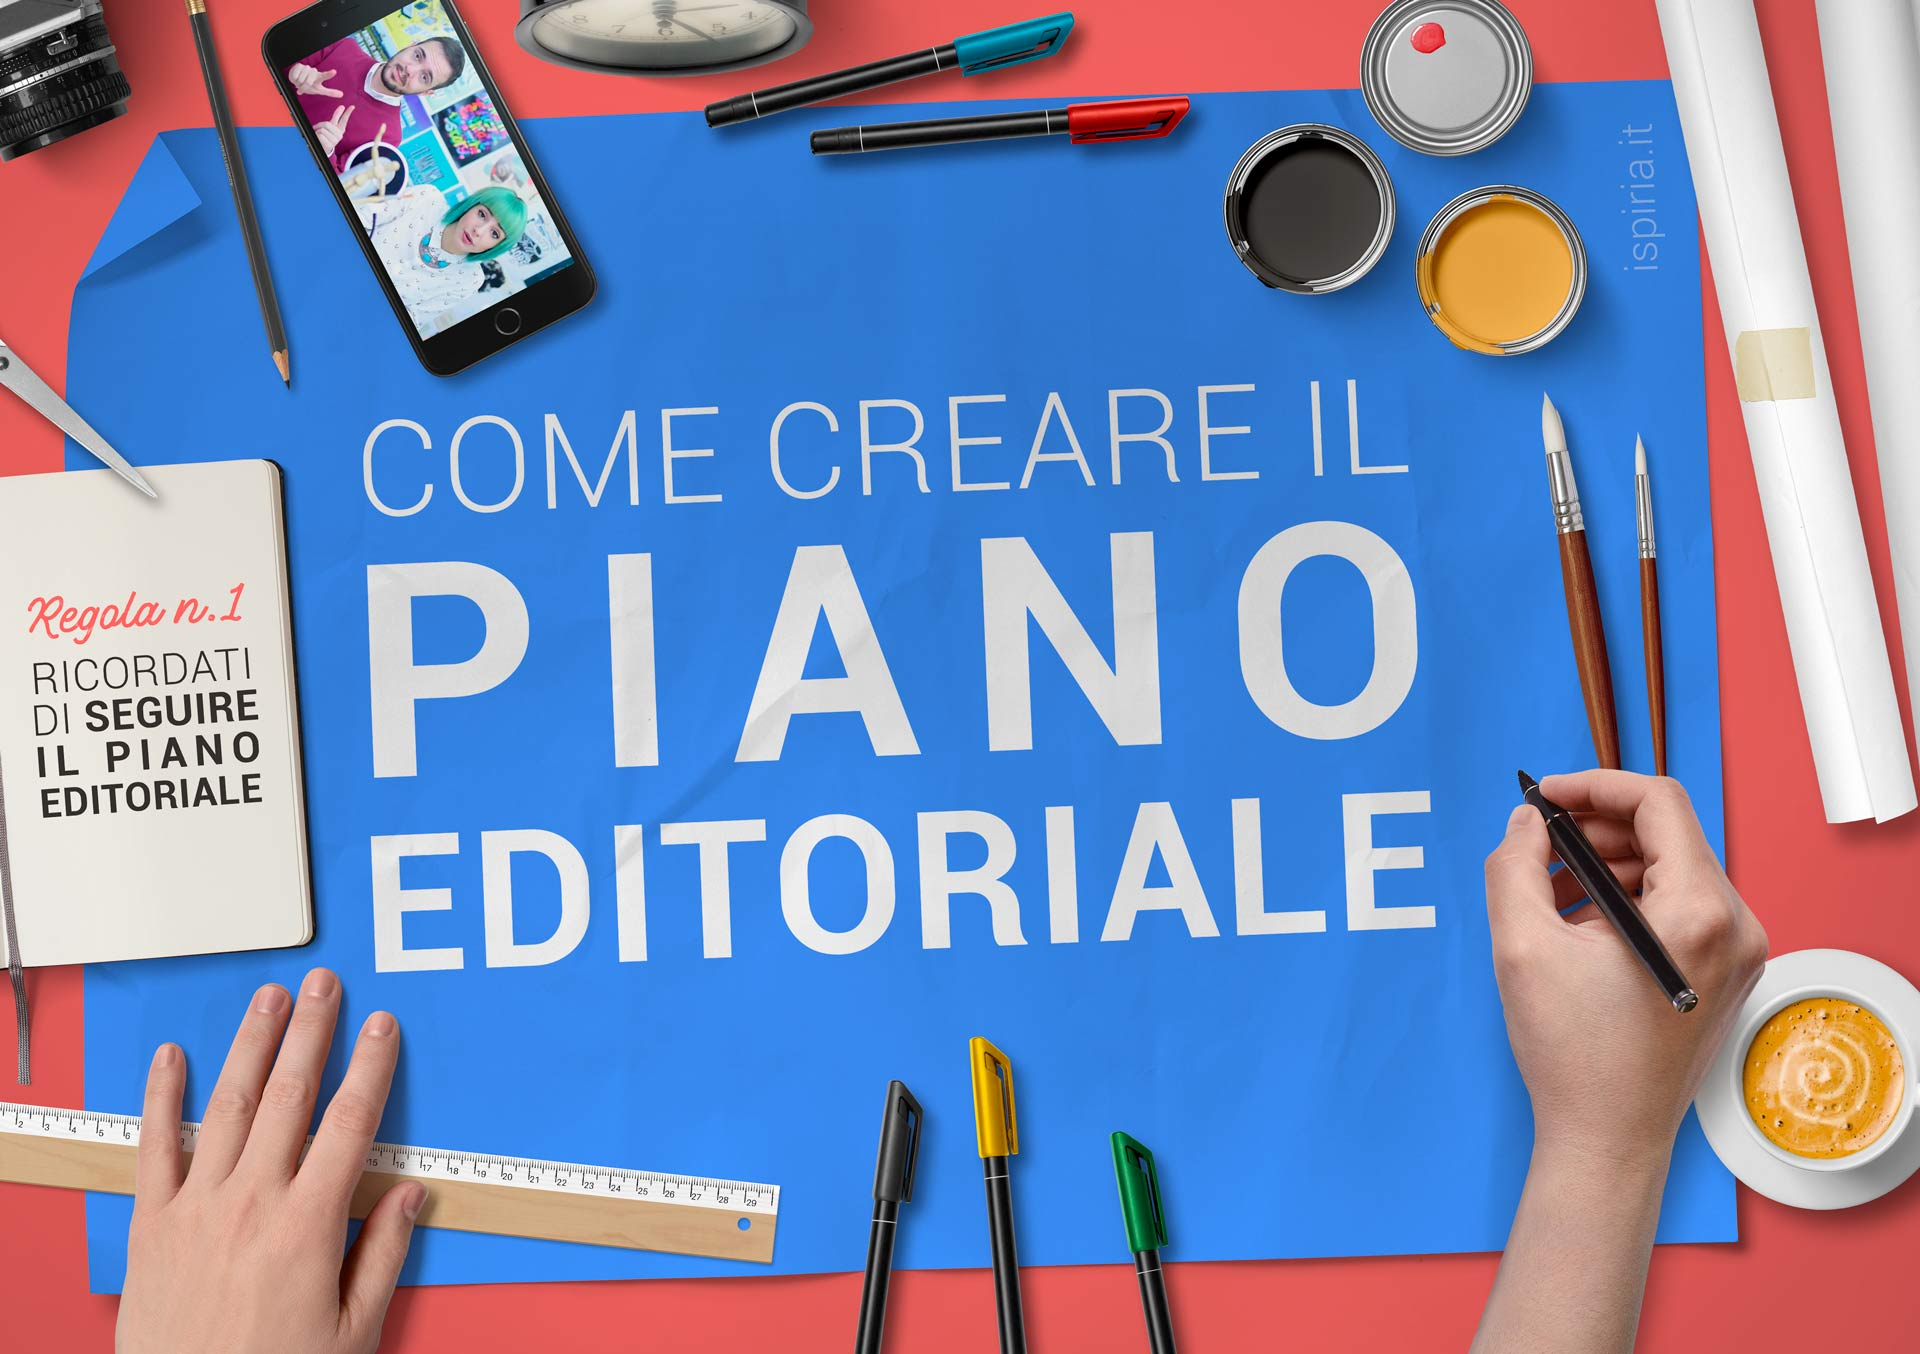 Piano Editoriale: Come Creare Un Piano Editoriale Sui Social Media [guida]